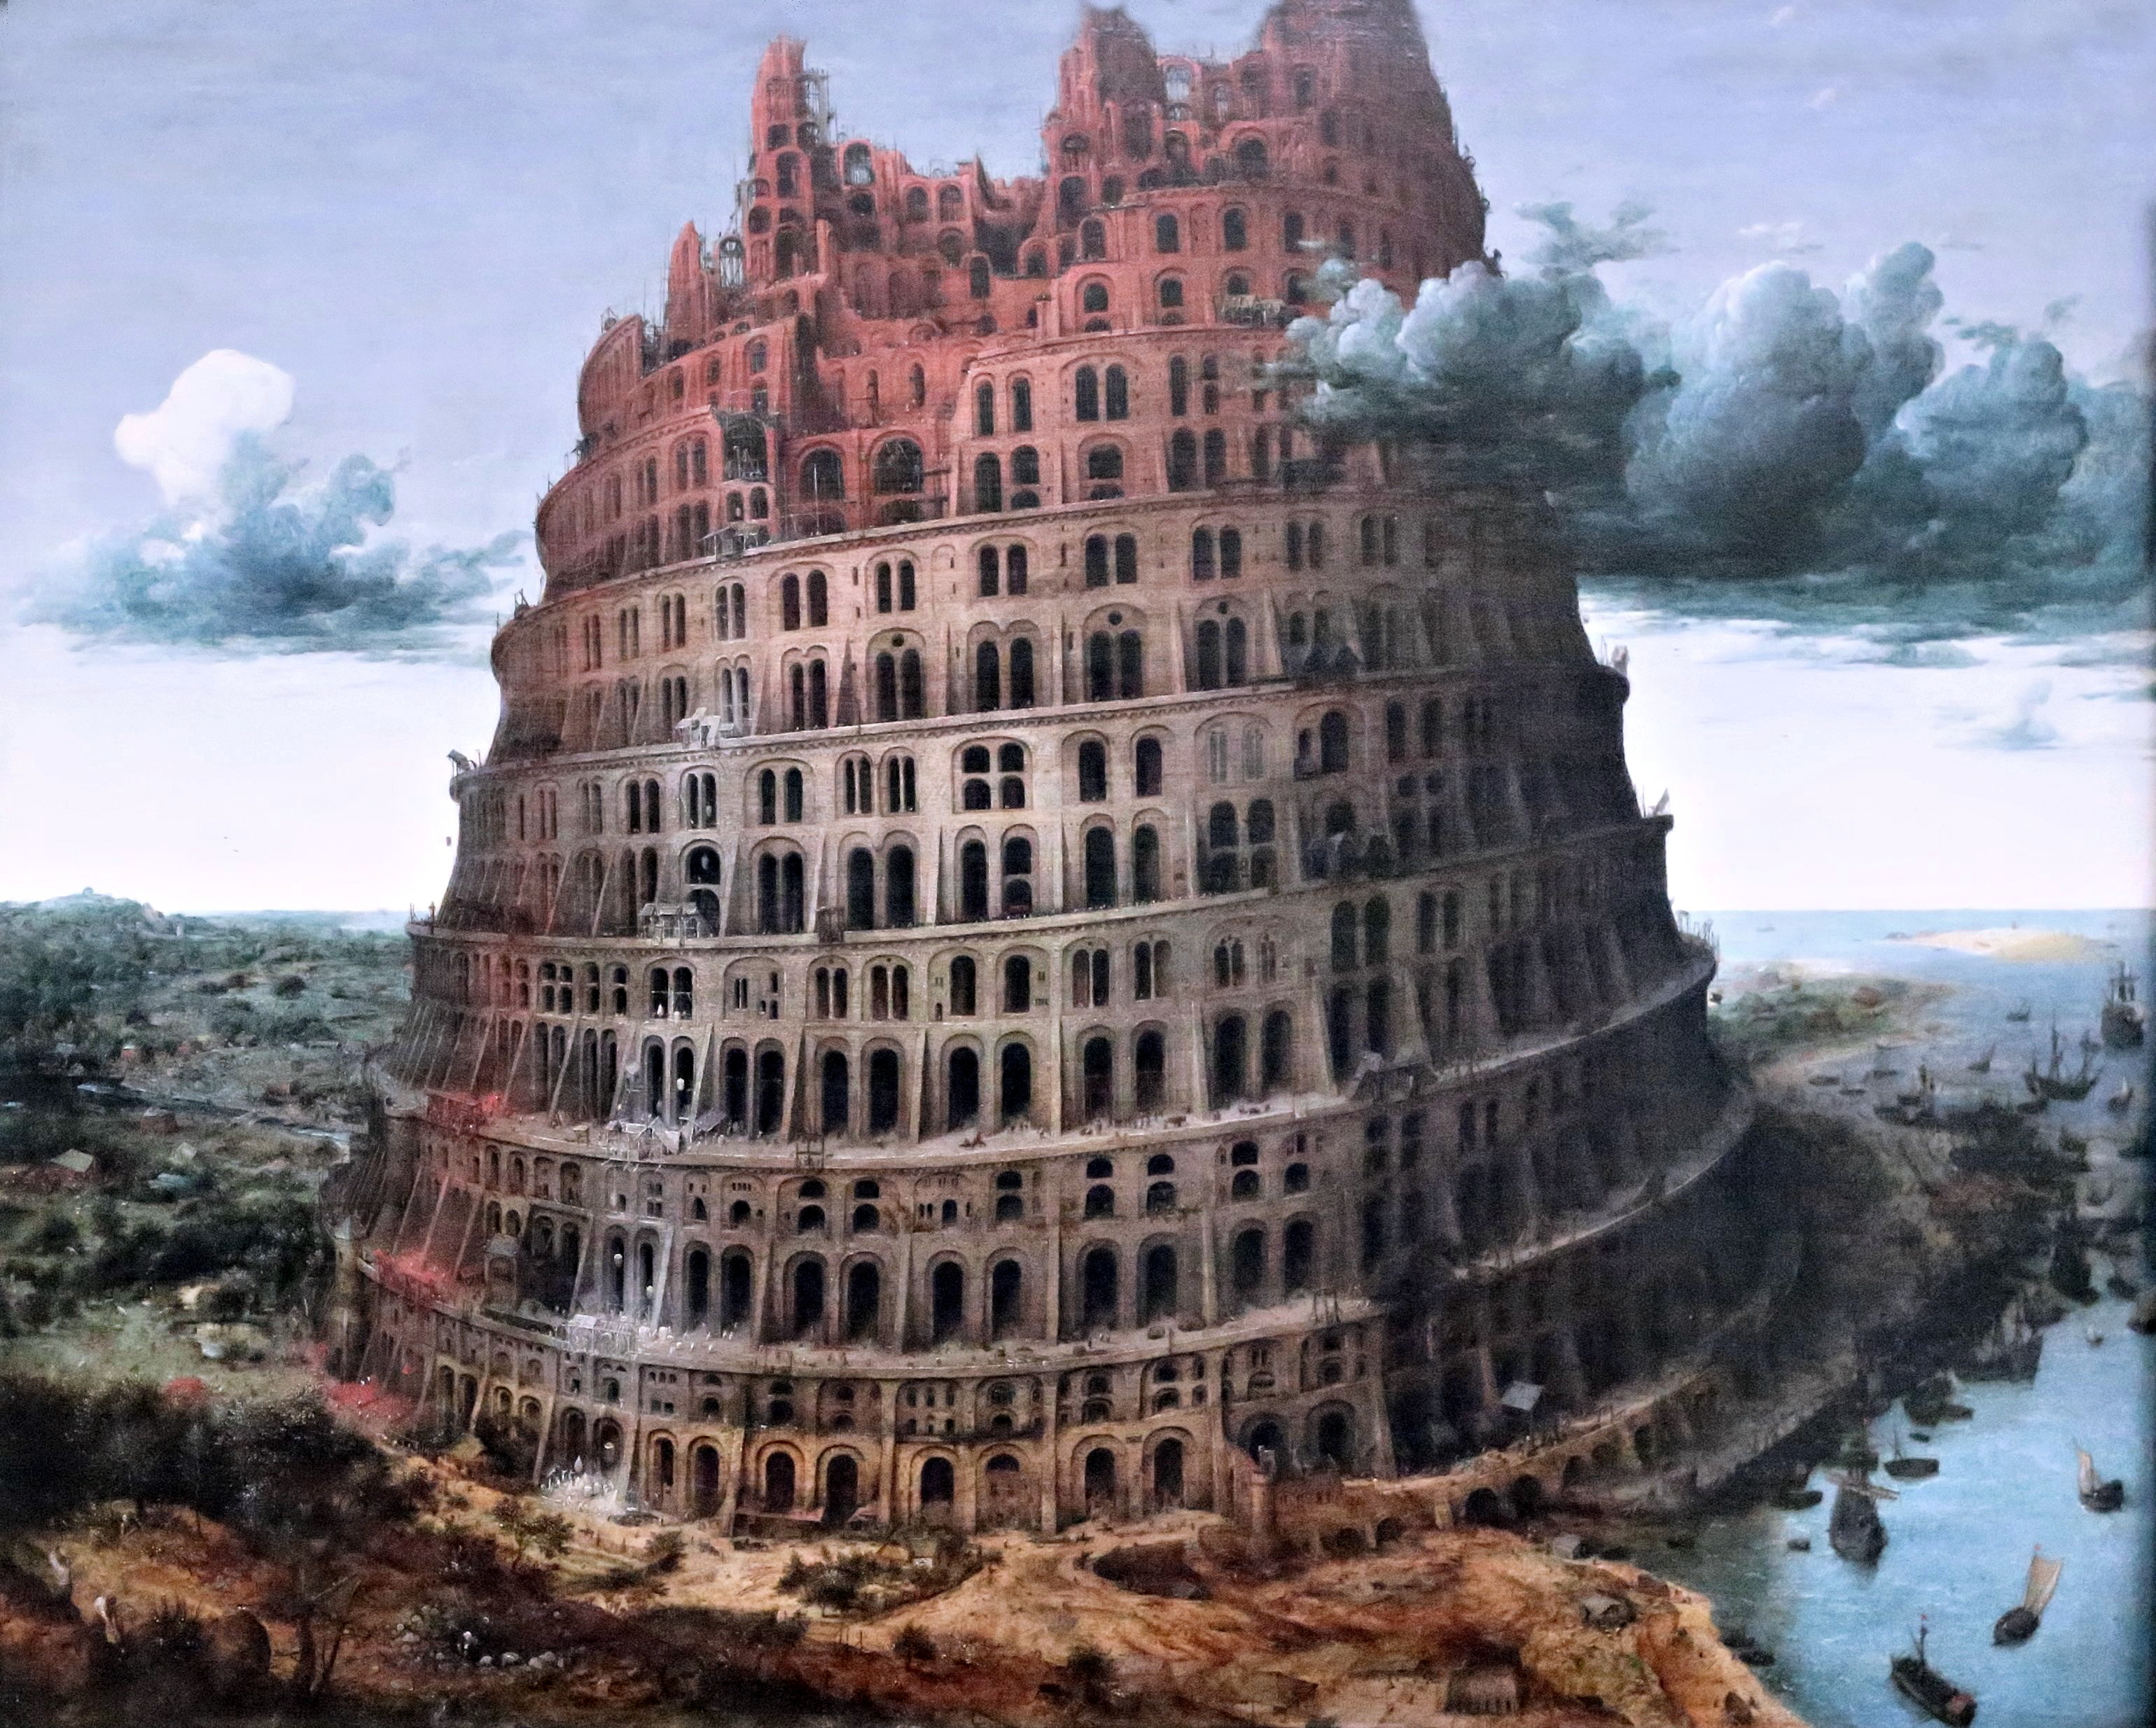 Bruegel - Le tour de Babel, Flickr.jpg